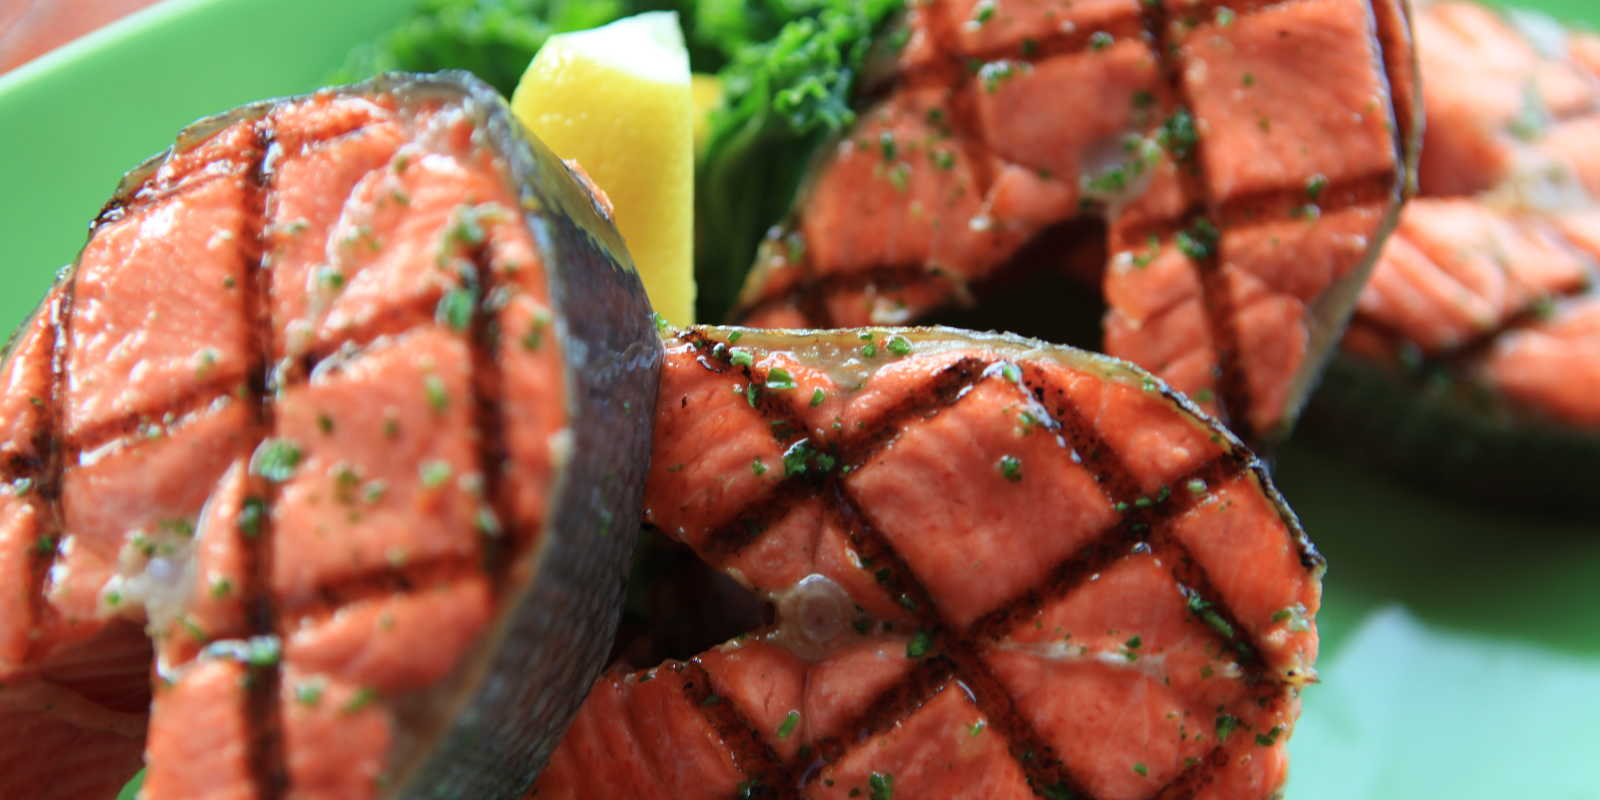 SAlmon steaks at Bridge Seafood restaurant